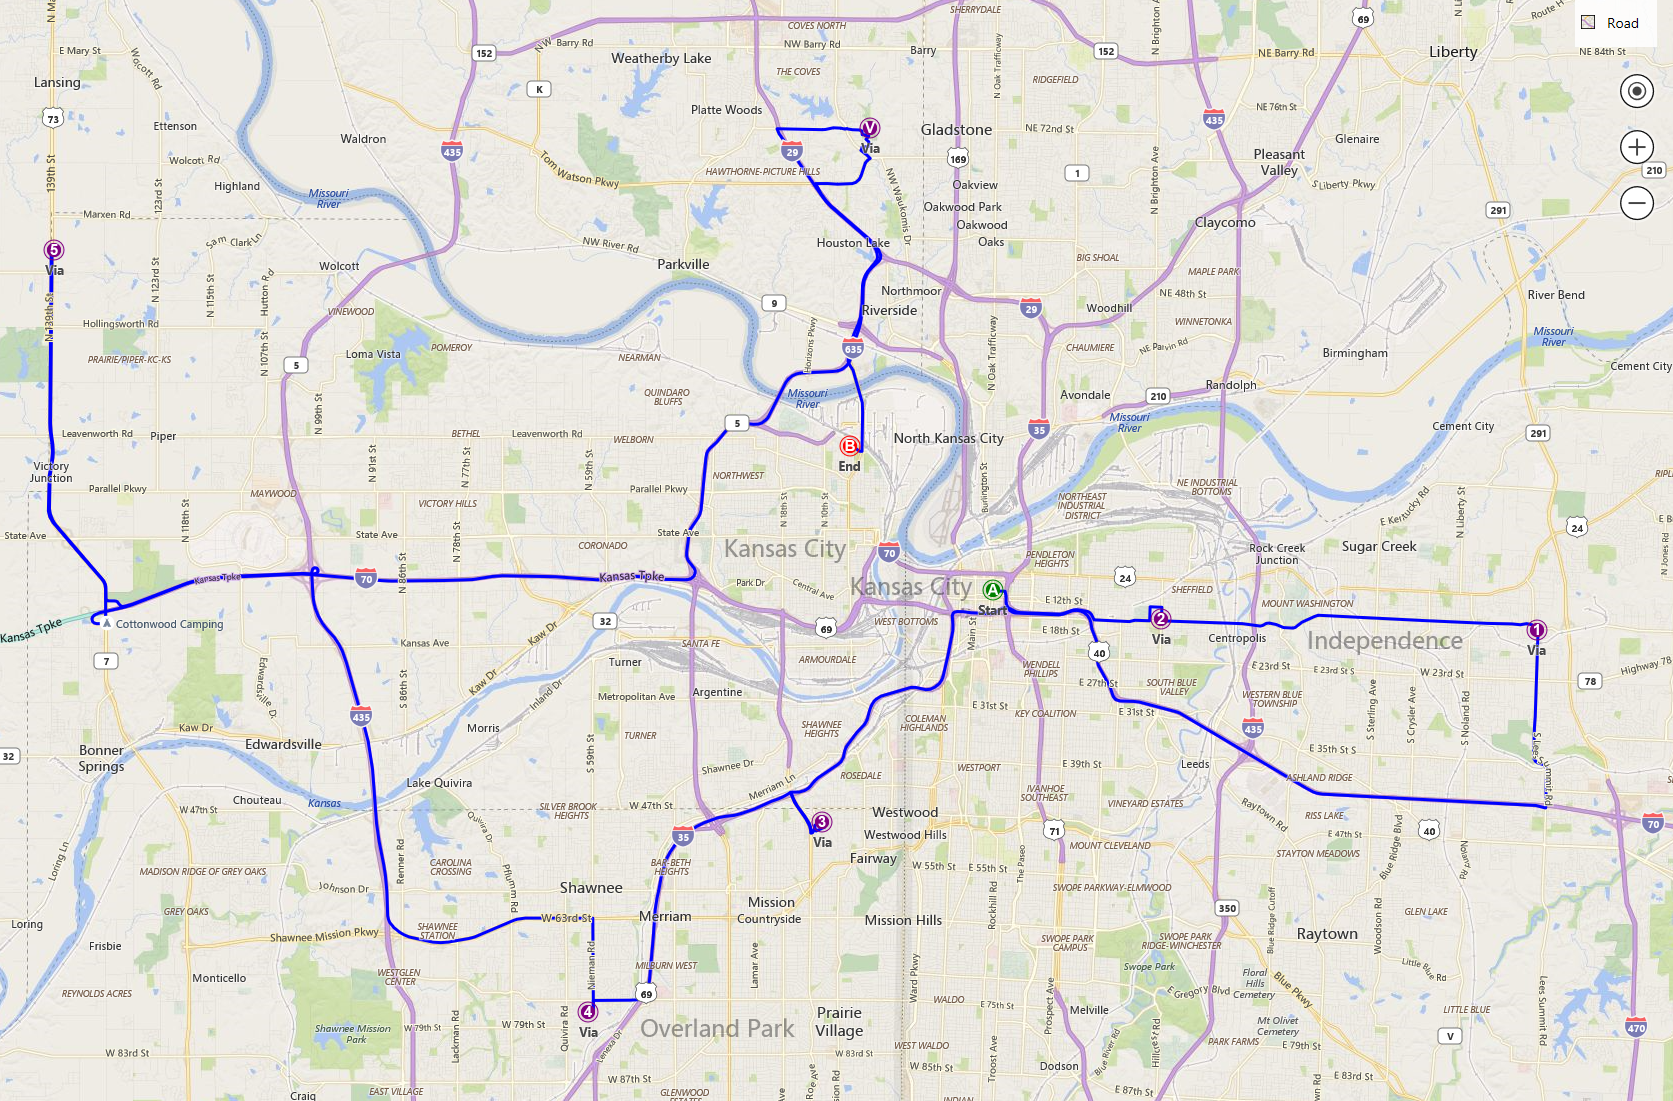 Bing Maps Routing API knows the shortest route that visits